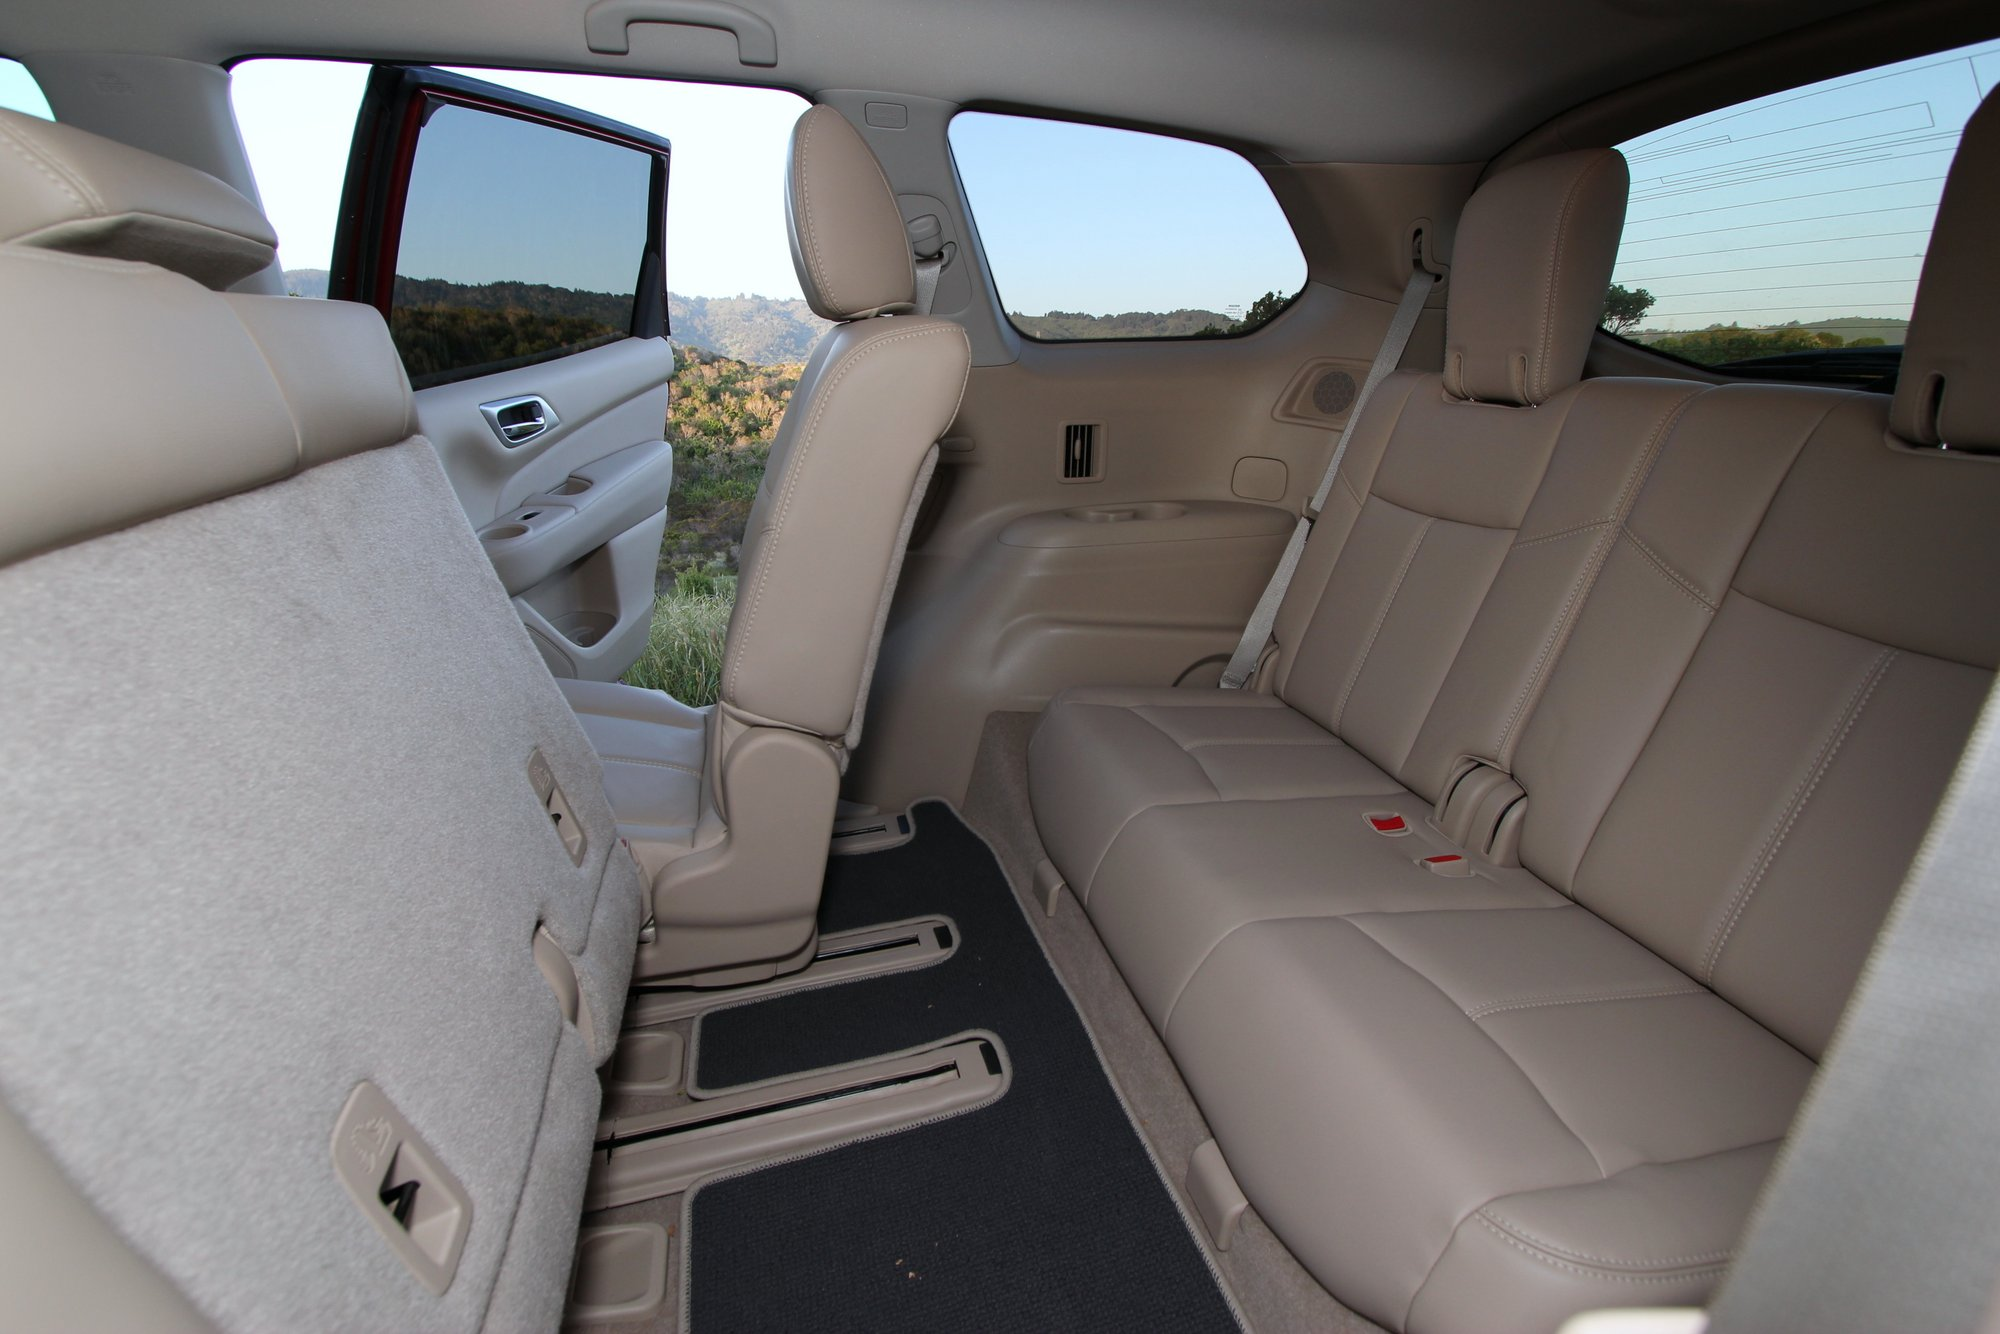 2015 nissan pathfinder 4x4 third row seat 001 the truth about cars. Black Bedroom Furniture Sets. Home Design Ideas